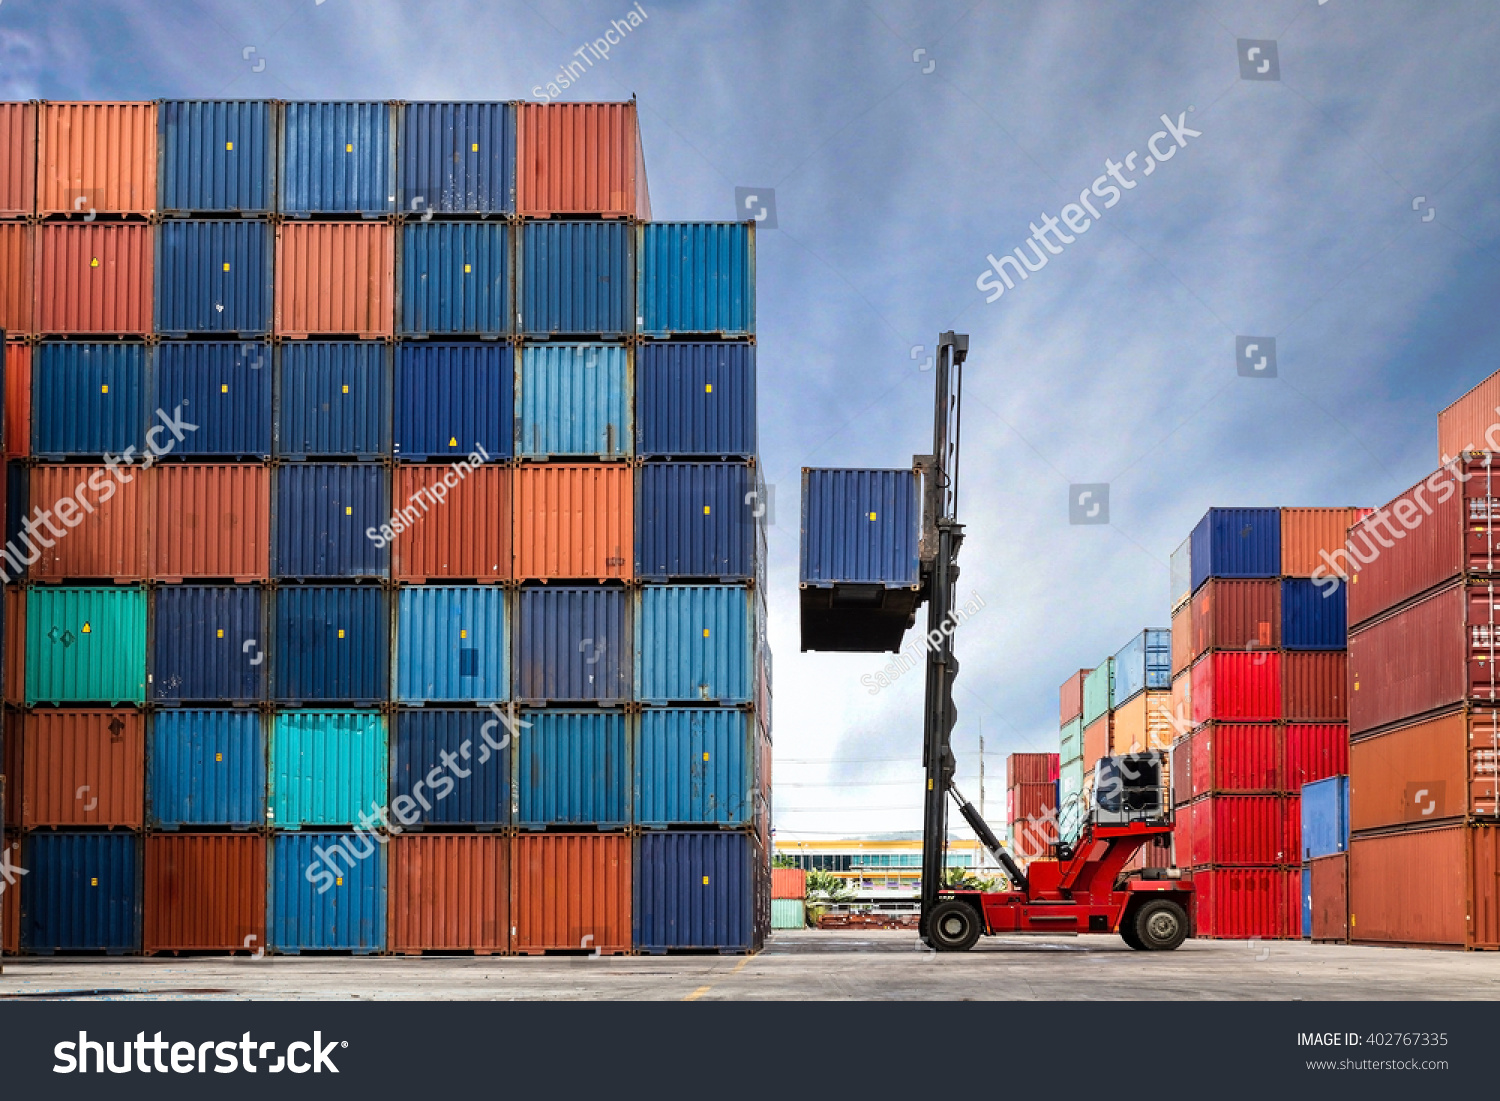 Crane lifting up container in yard #402767335